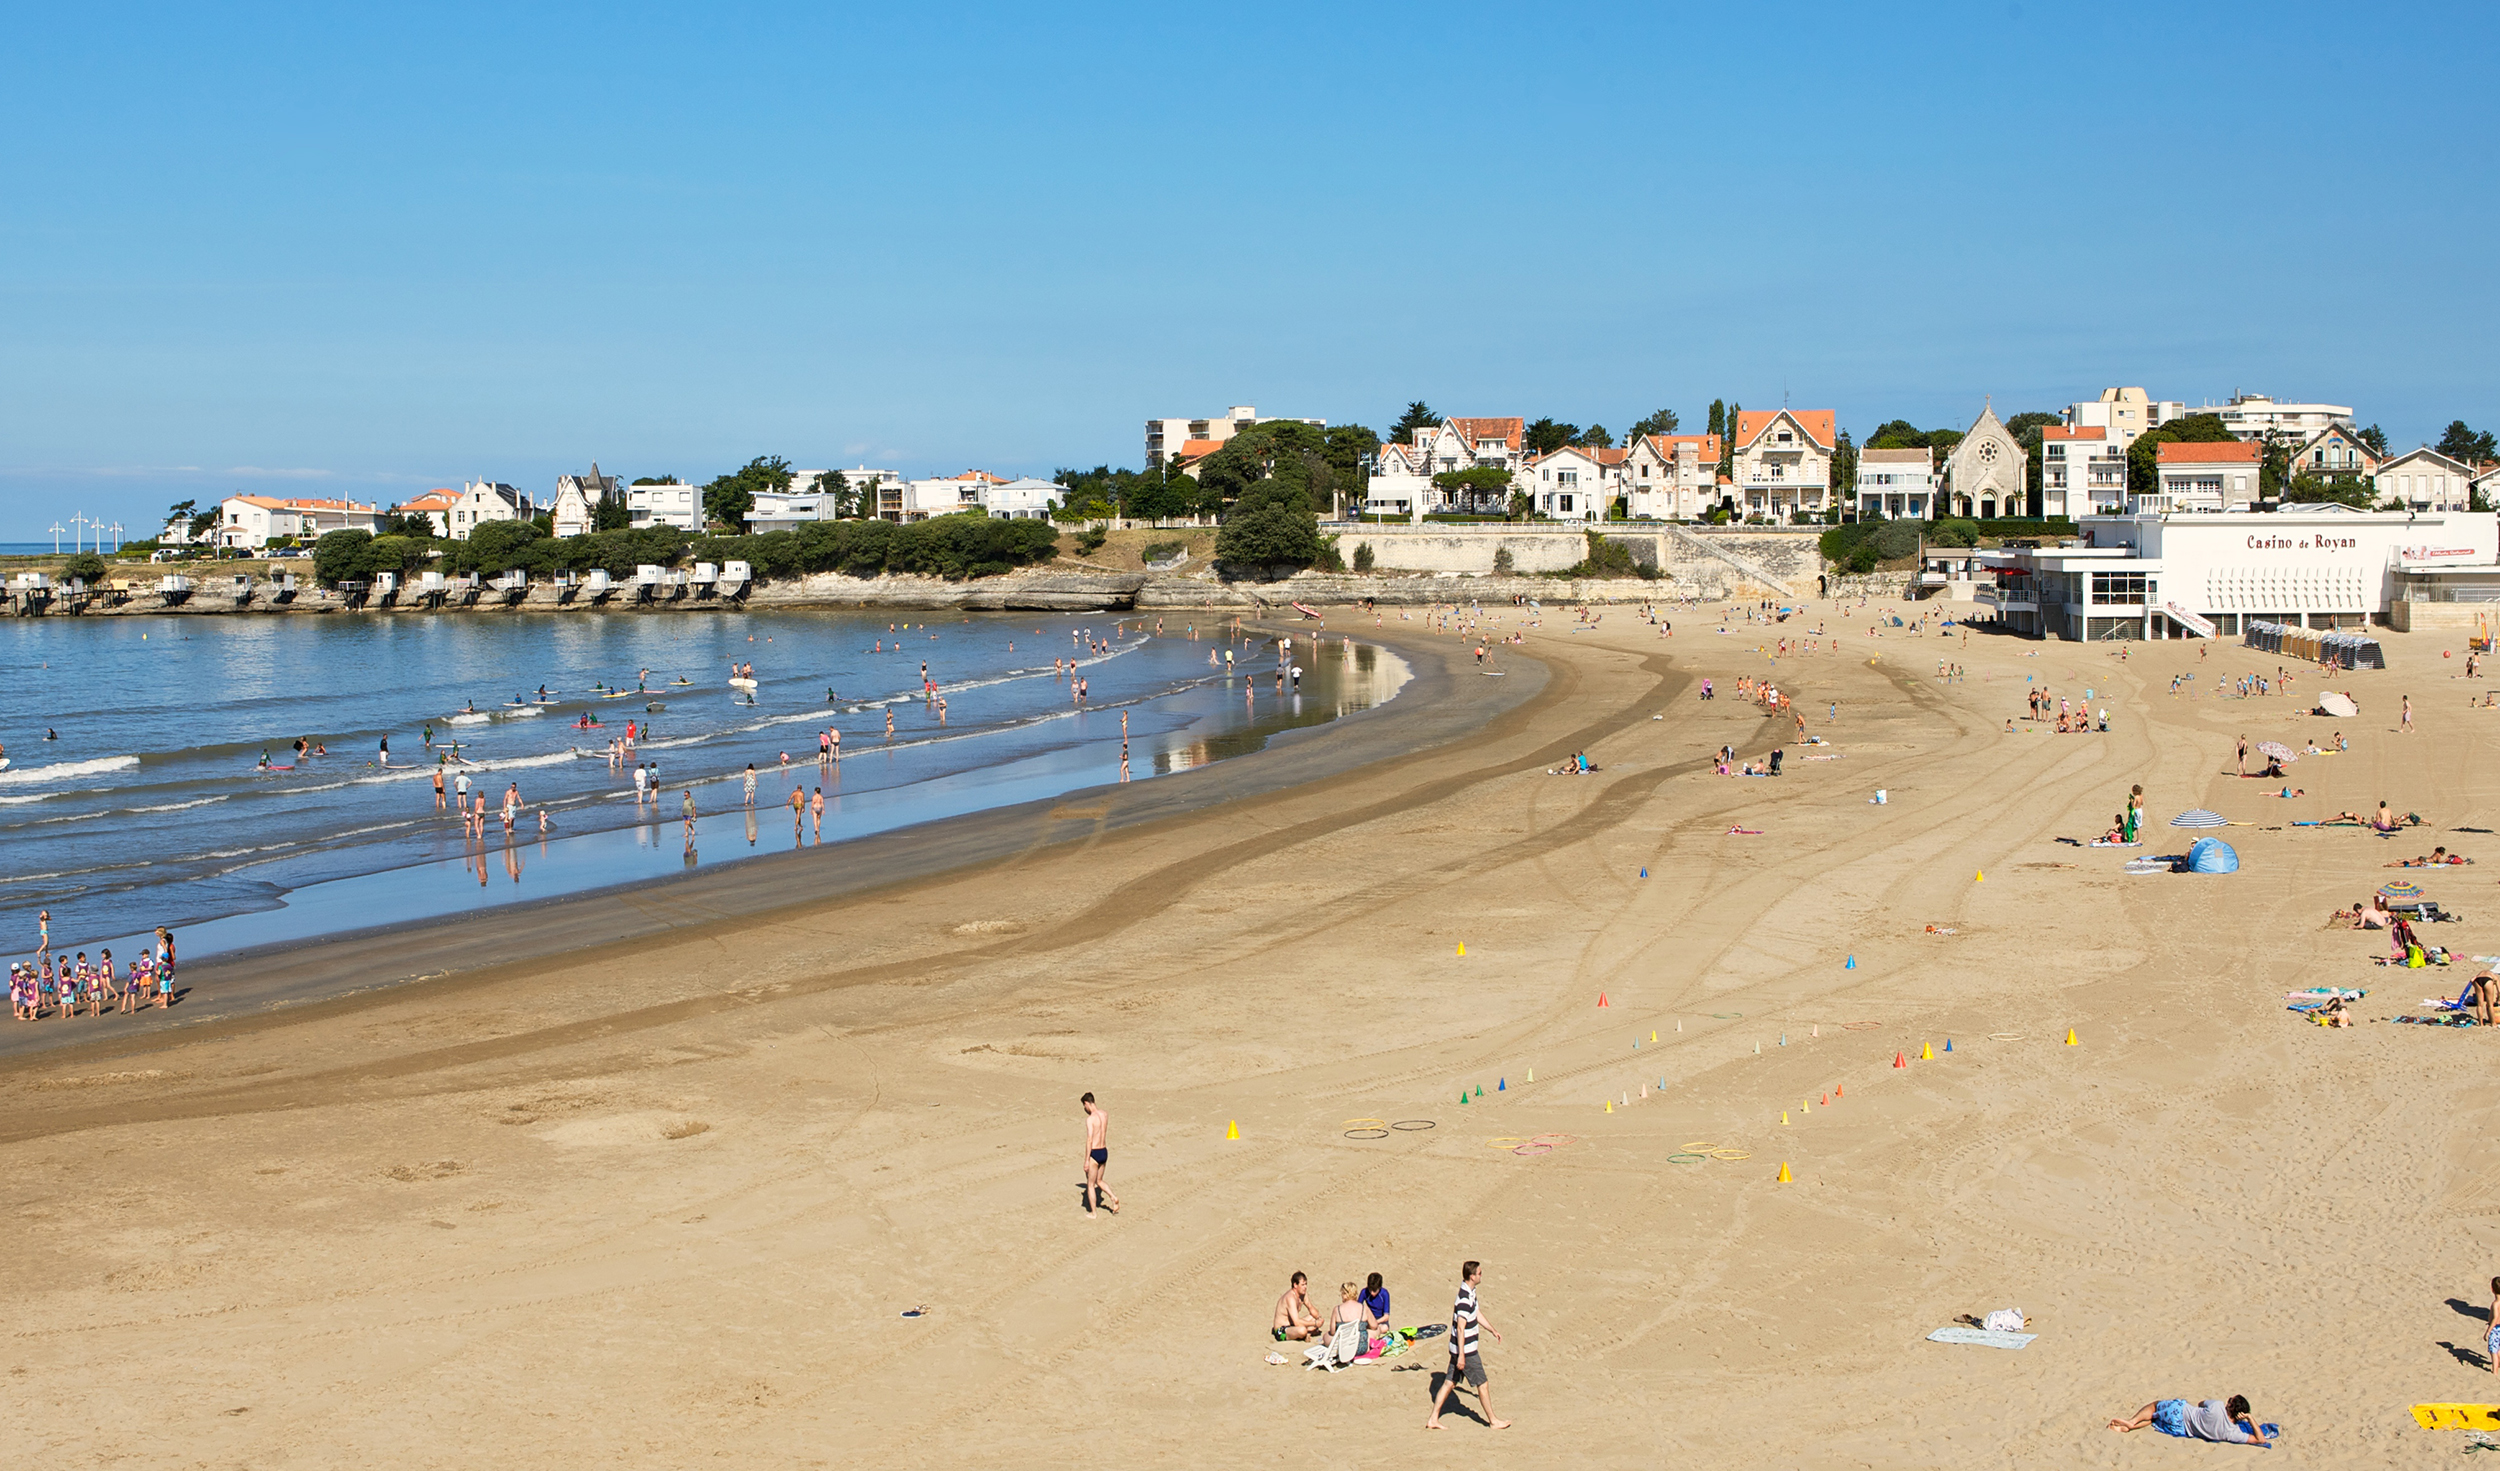 Office de tourisme de royan pontaillac - Office du tourisme de royan charente maritime ...